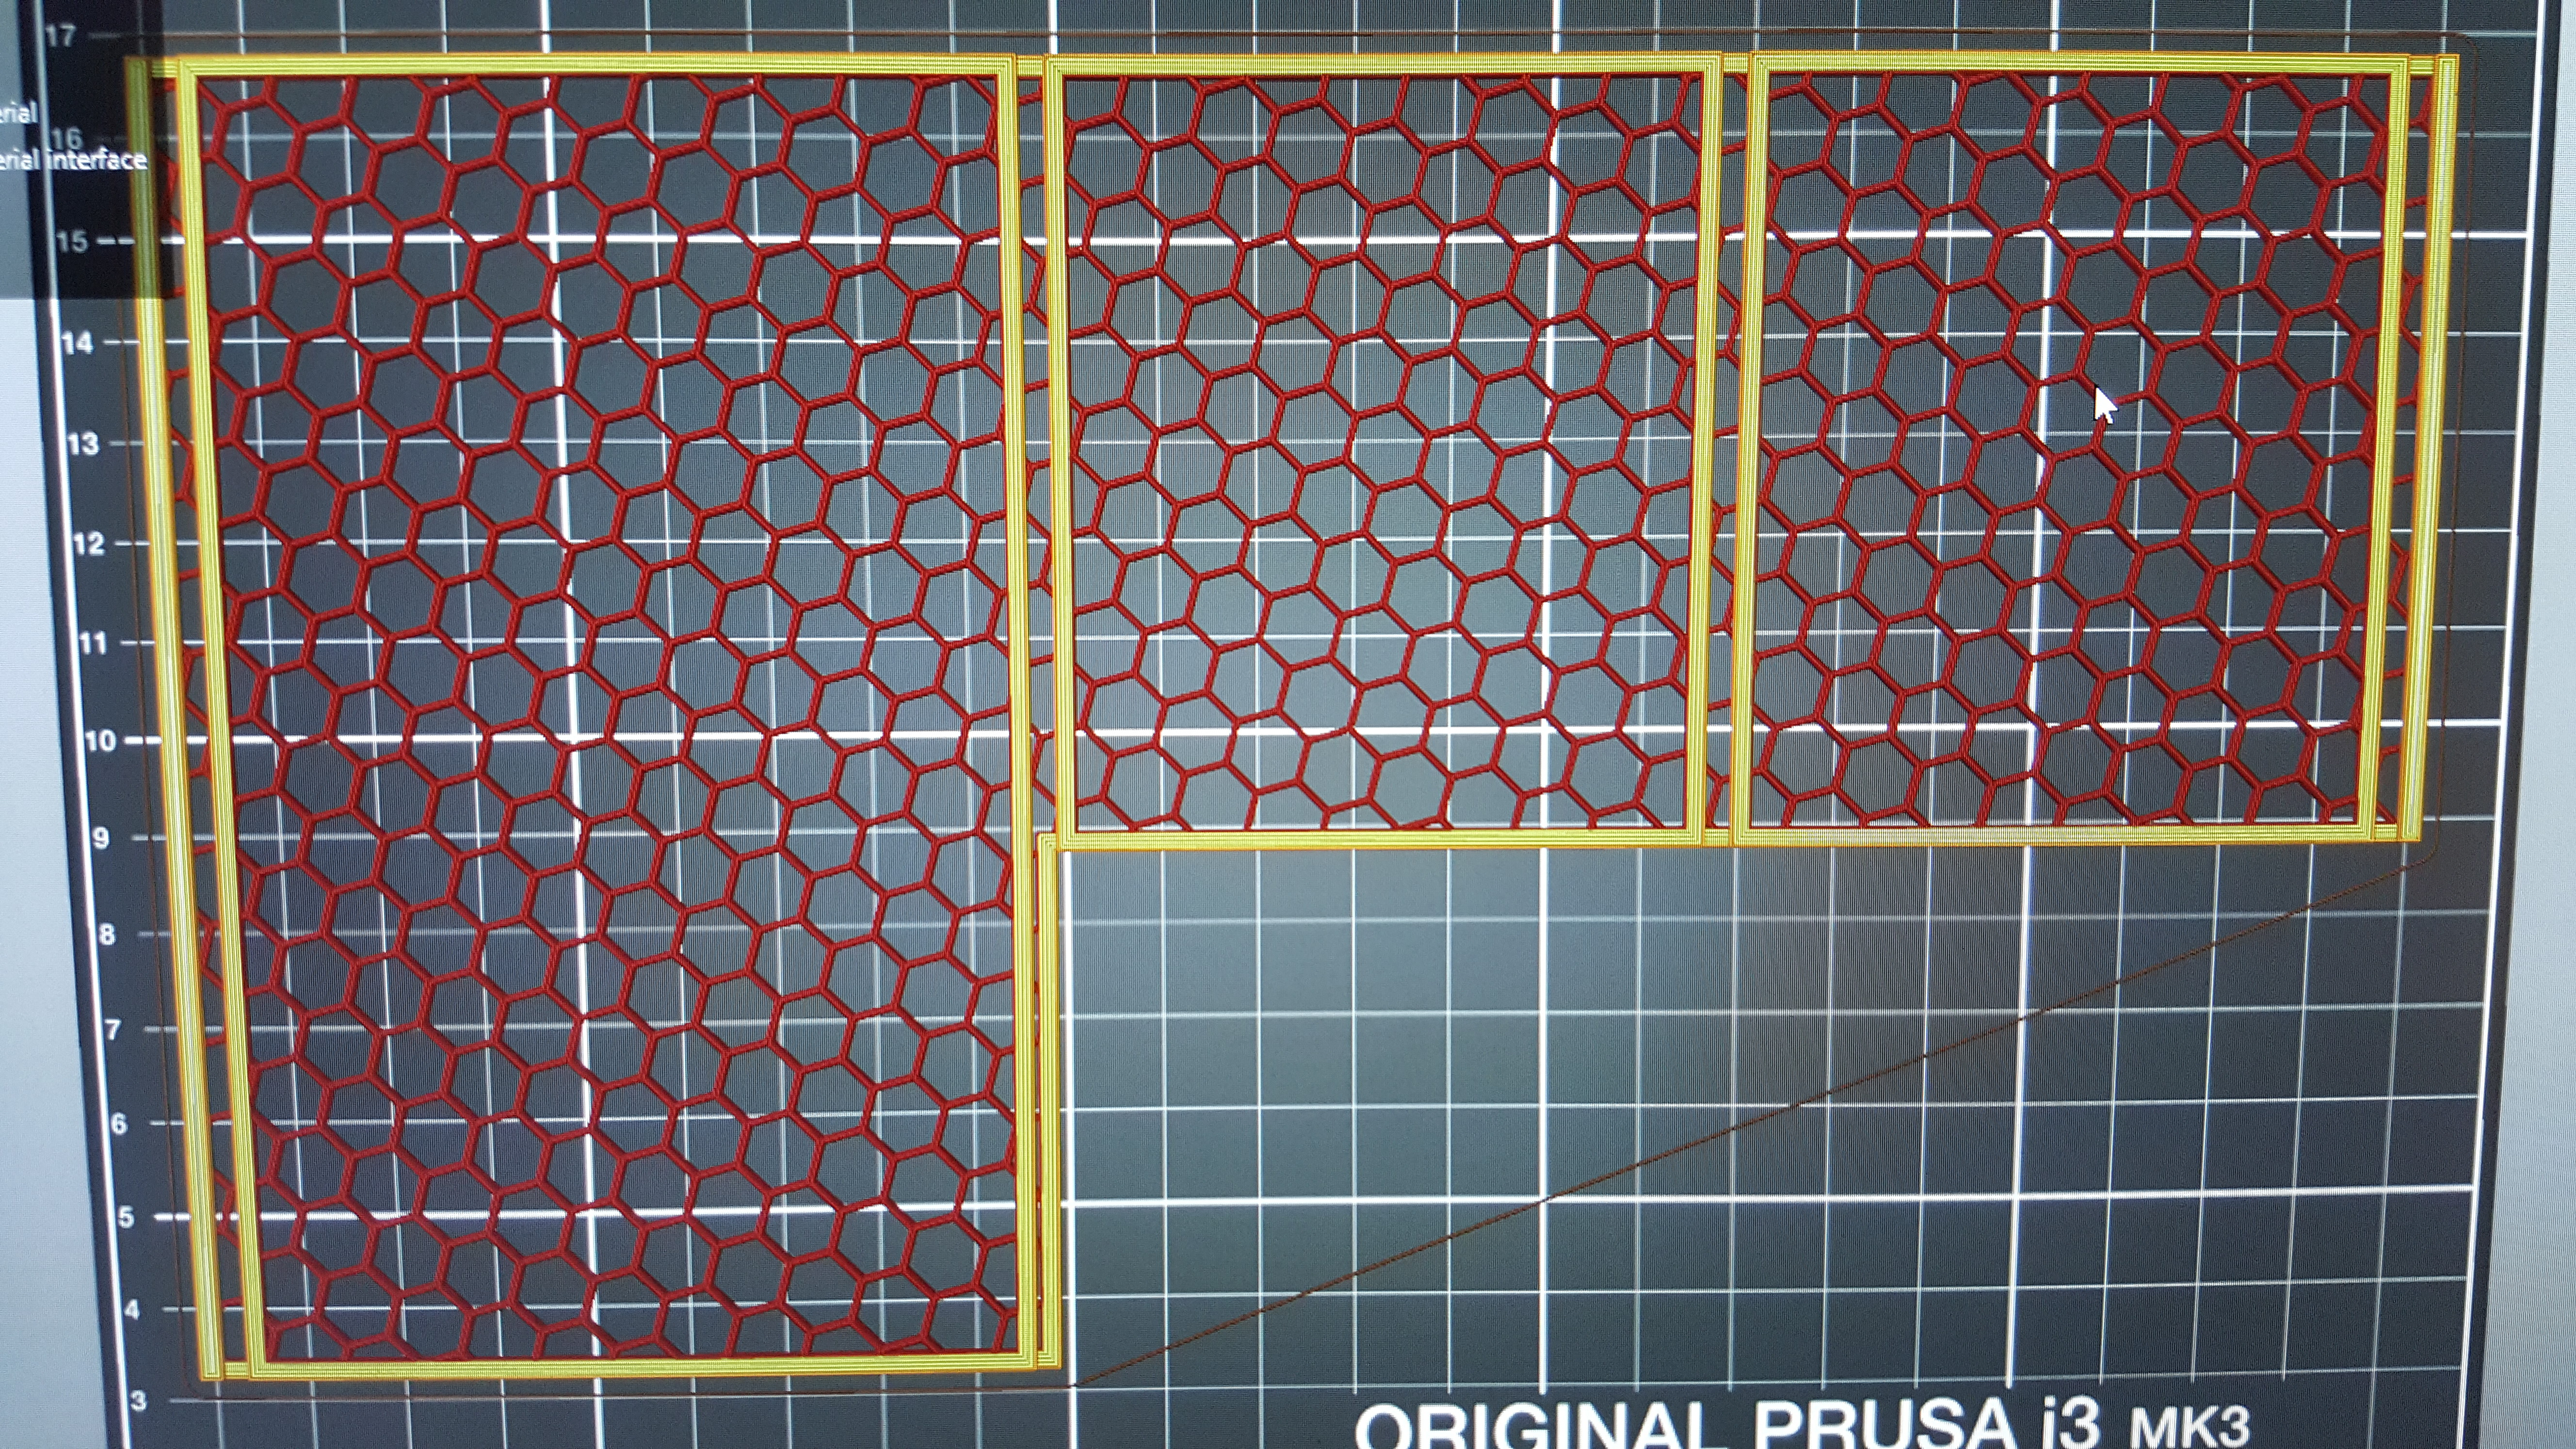 Slicer Screenshot of the Honeycomb Structure